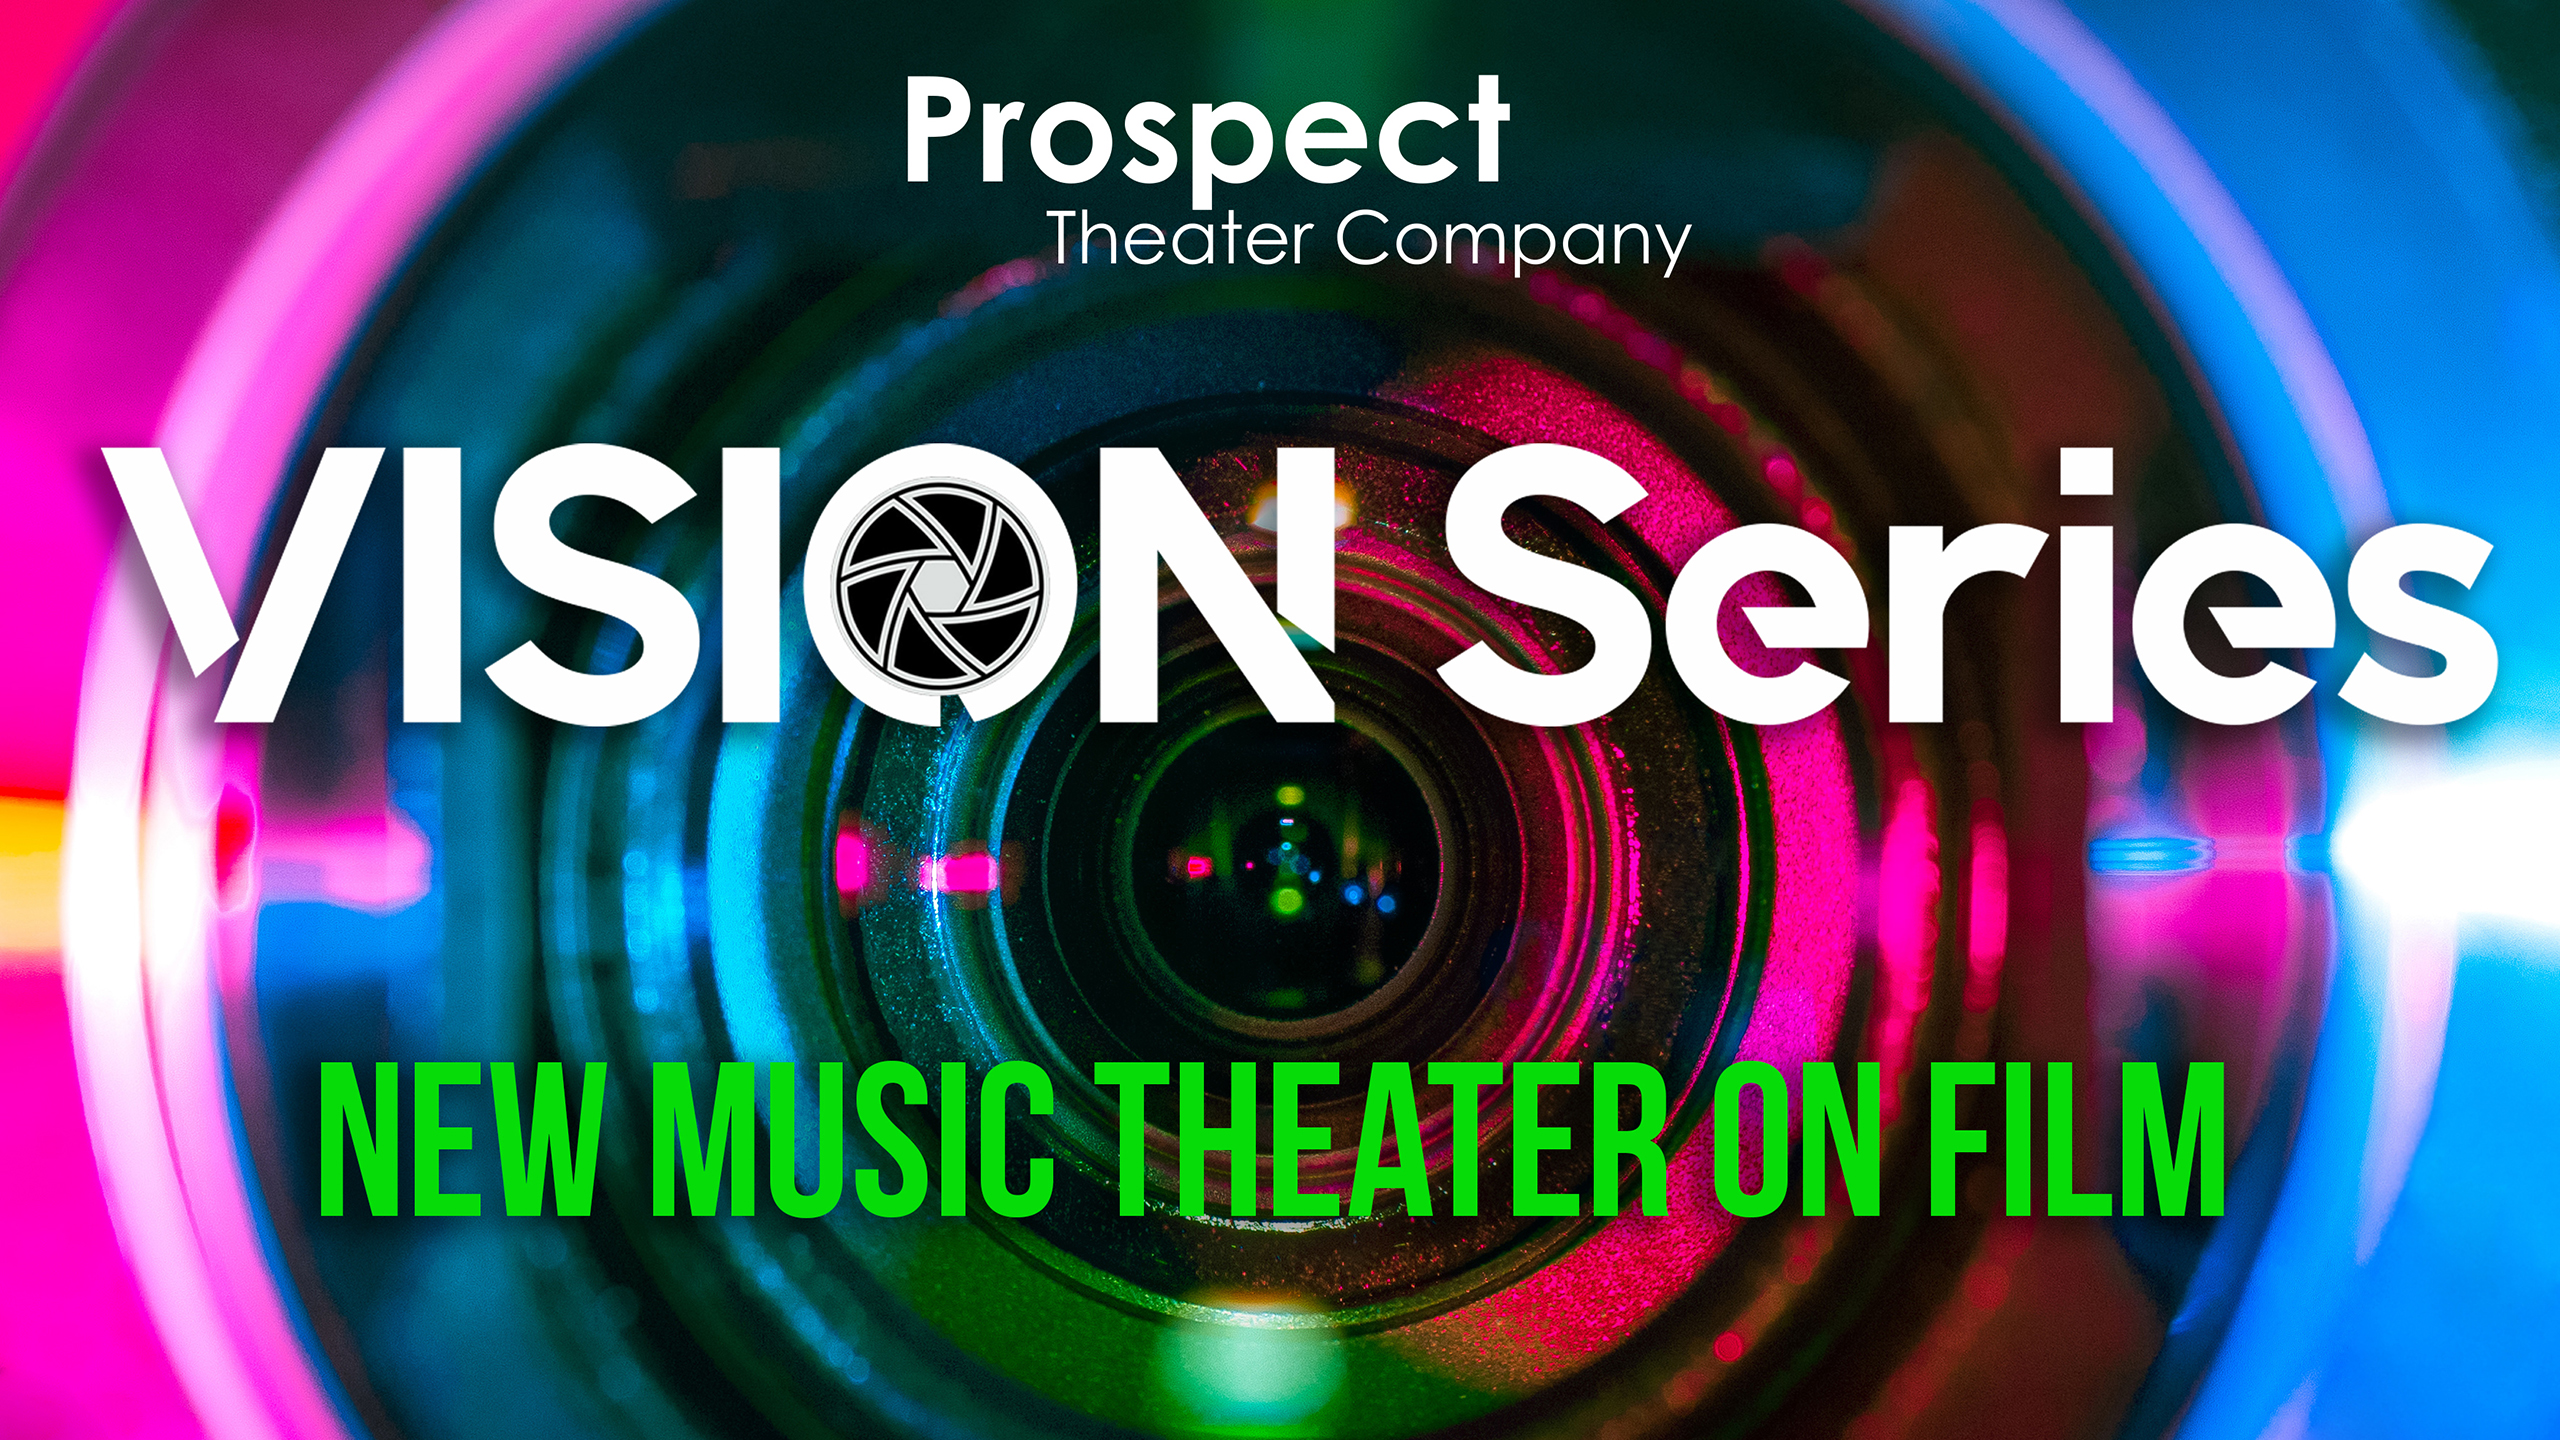 Prospect Theater Company Announces Commissions for VISION Series